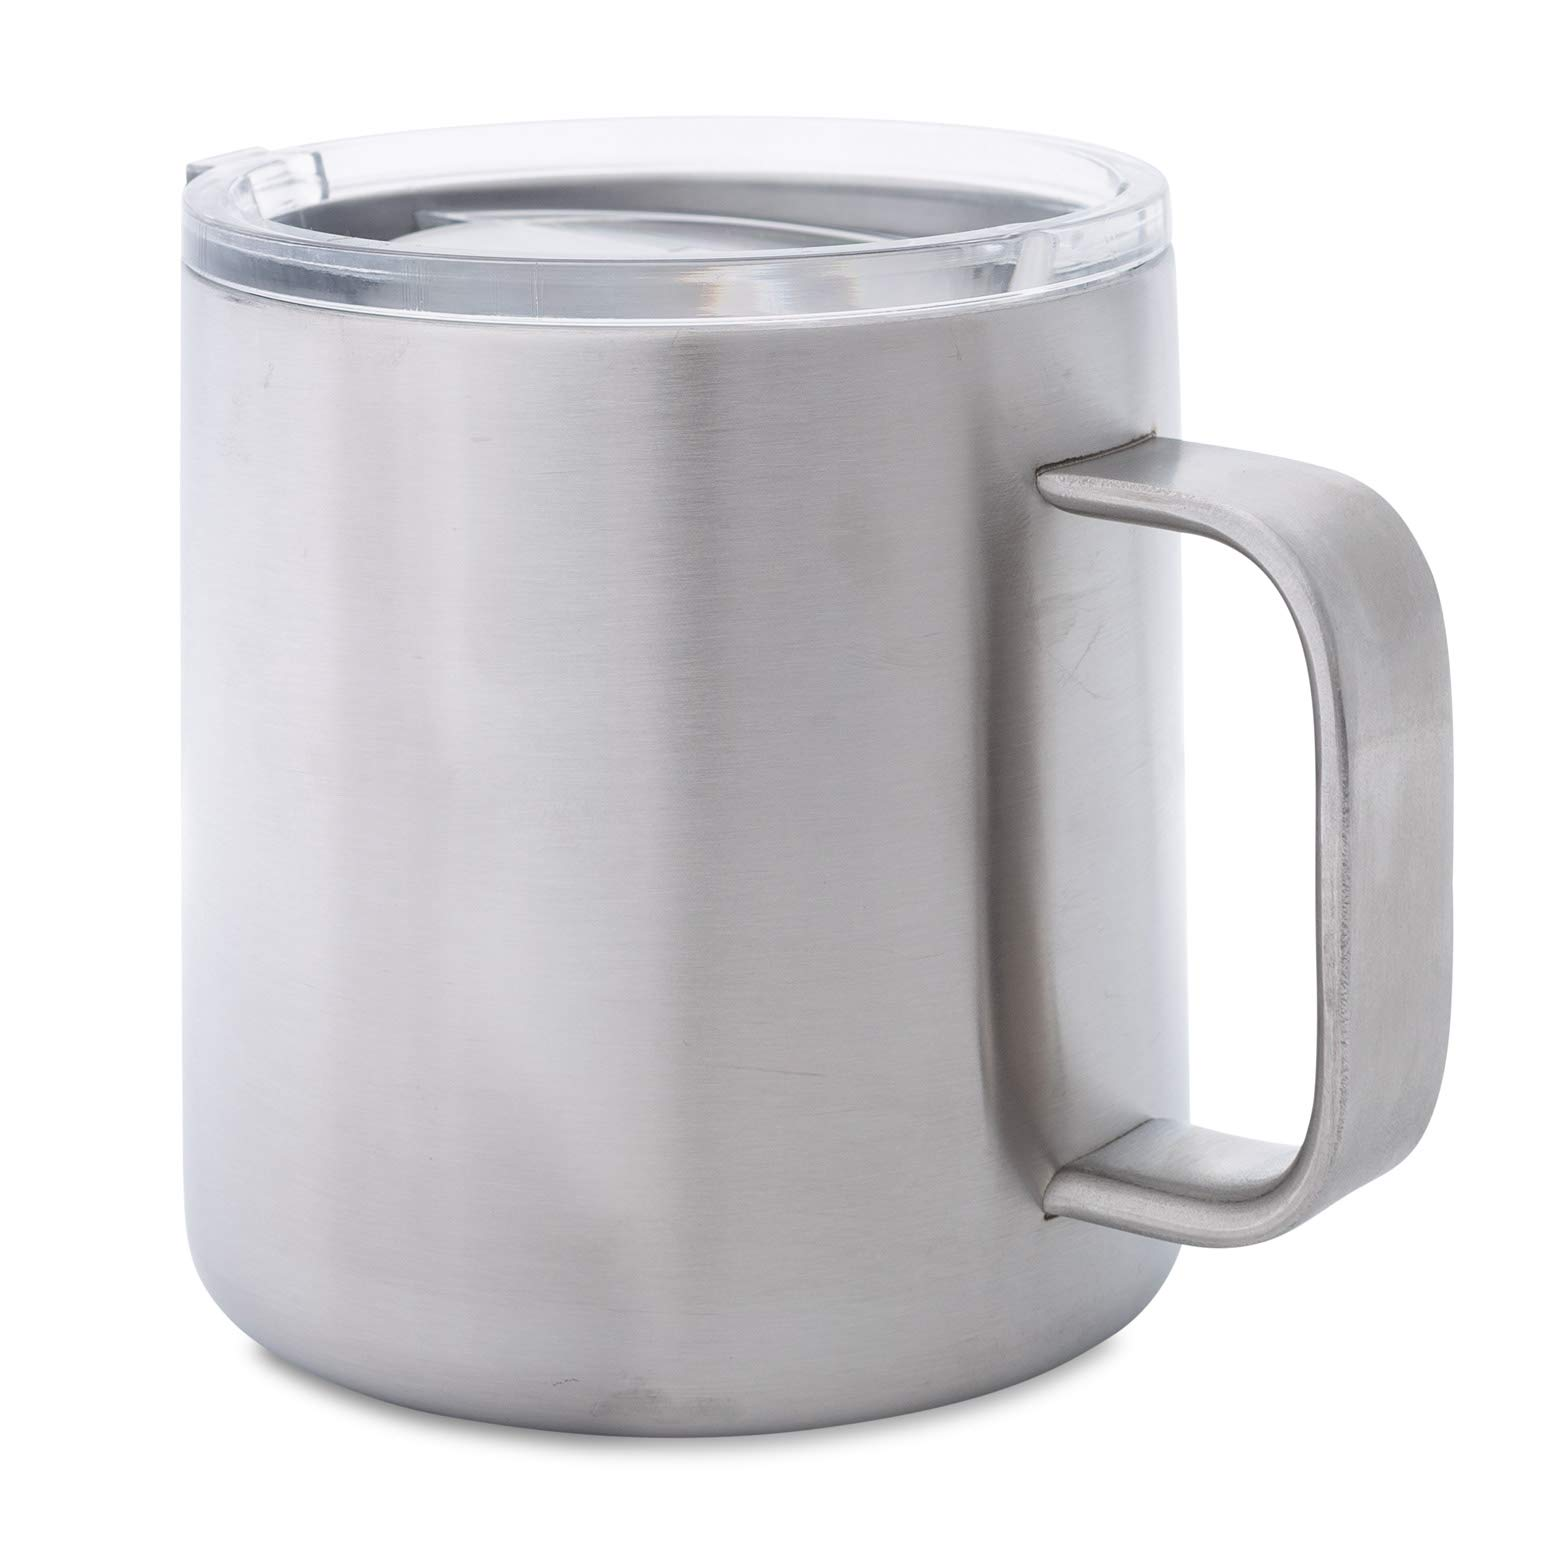 Stainless Steel Double Walled Mug: 16 oz Thick Gauge Metal Coffee Camp Cup with Lid - Insulated Mug with Handle Keeps Drinks Hot or Cold Longer - Durable, Rust Proof & Shatter Proof